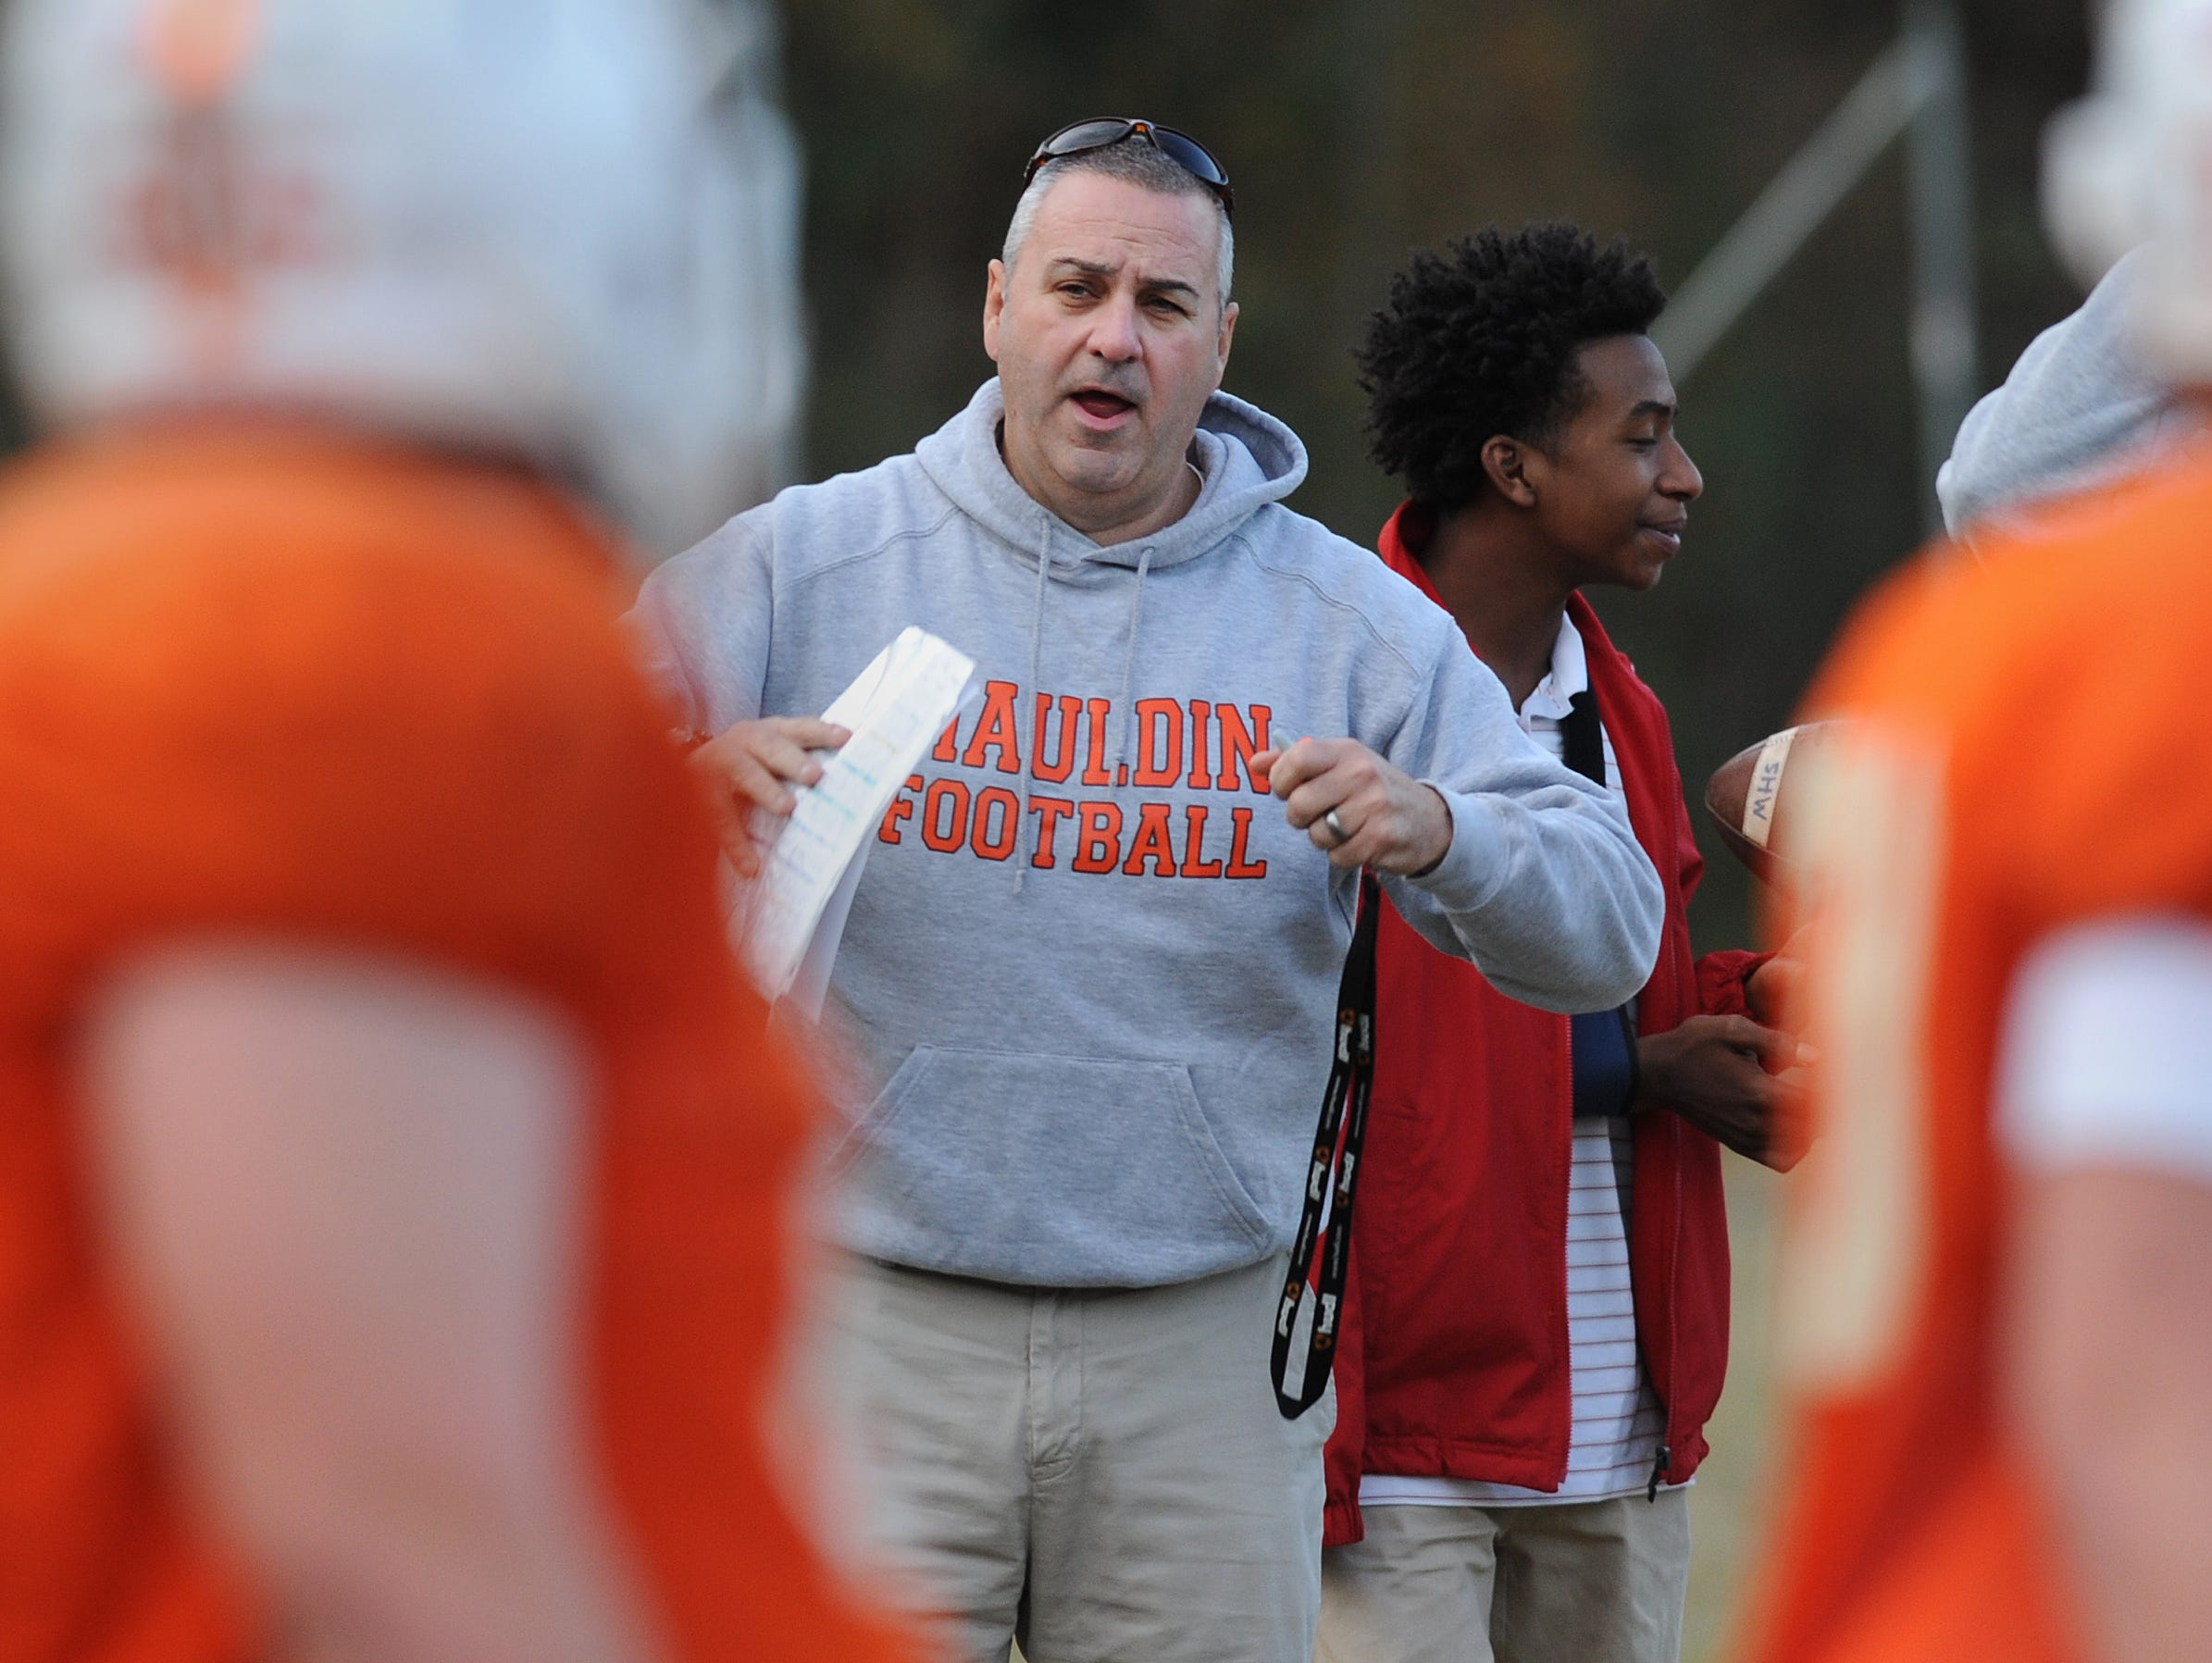 Mauldin head coach Lee Taylor calls plays to the offense during the teams practice Monday, November 16, 2015. Mauldin will play Hillcrest in the 1st round of the AAAA playoffs Friday at Hillcrest.